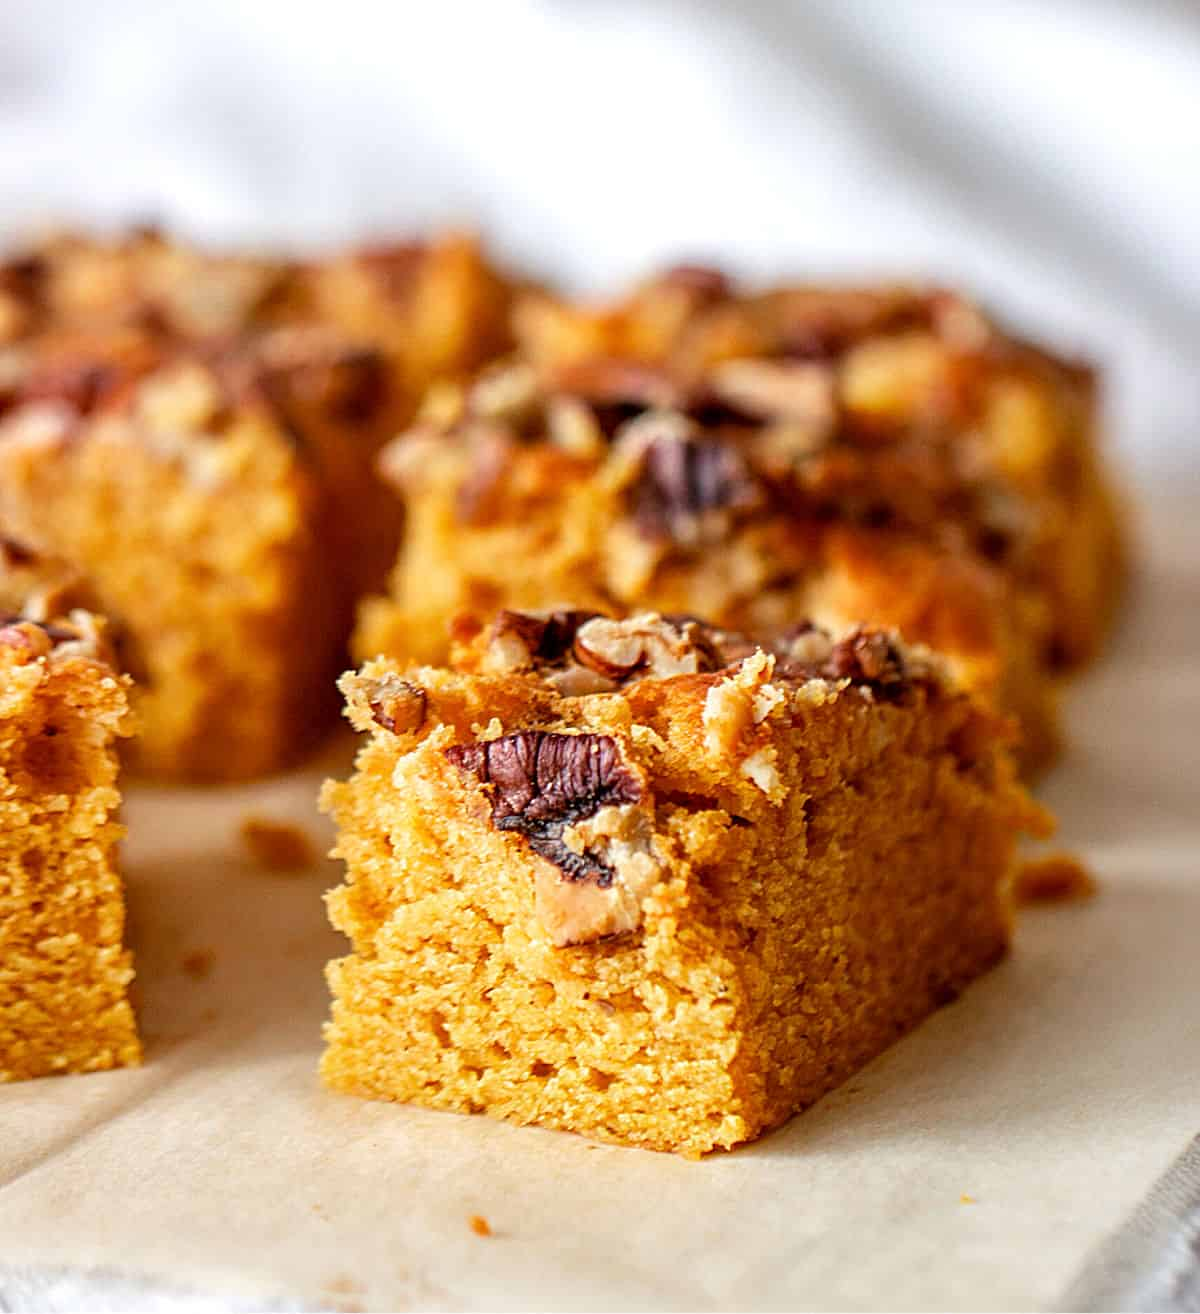 Rows of pumpkin cake squares topped with pecans, parchment paper surface, grey background